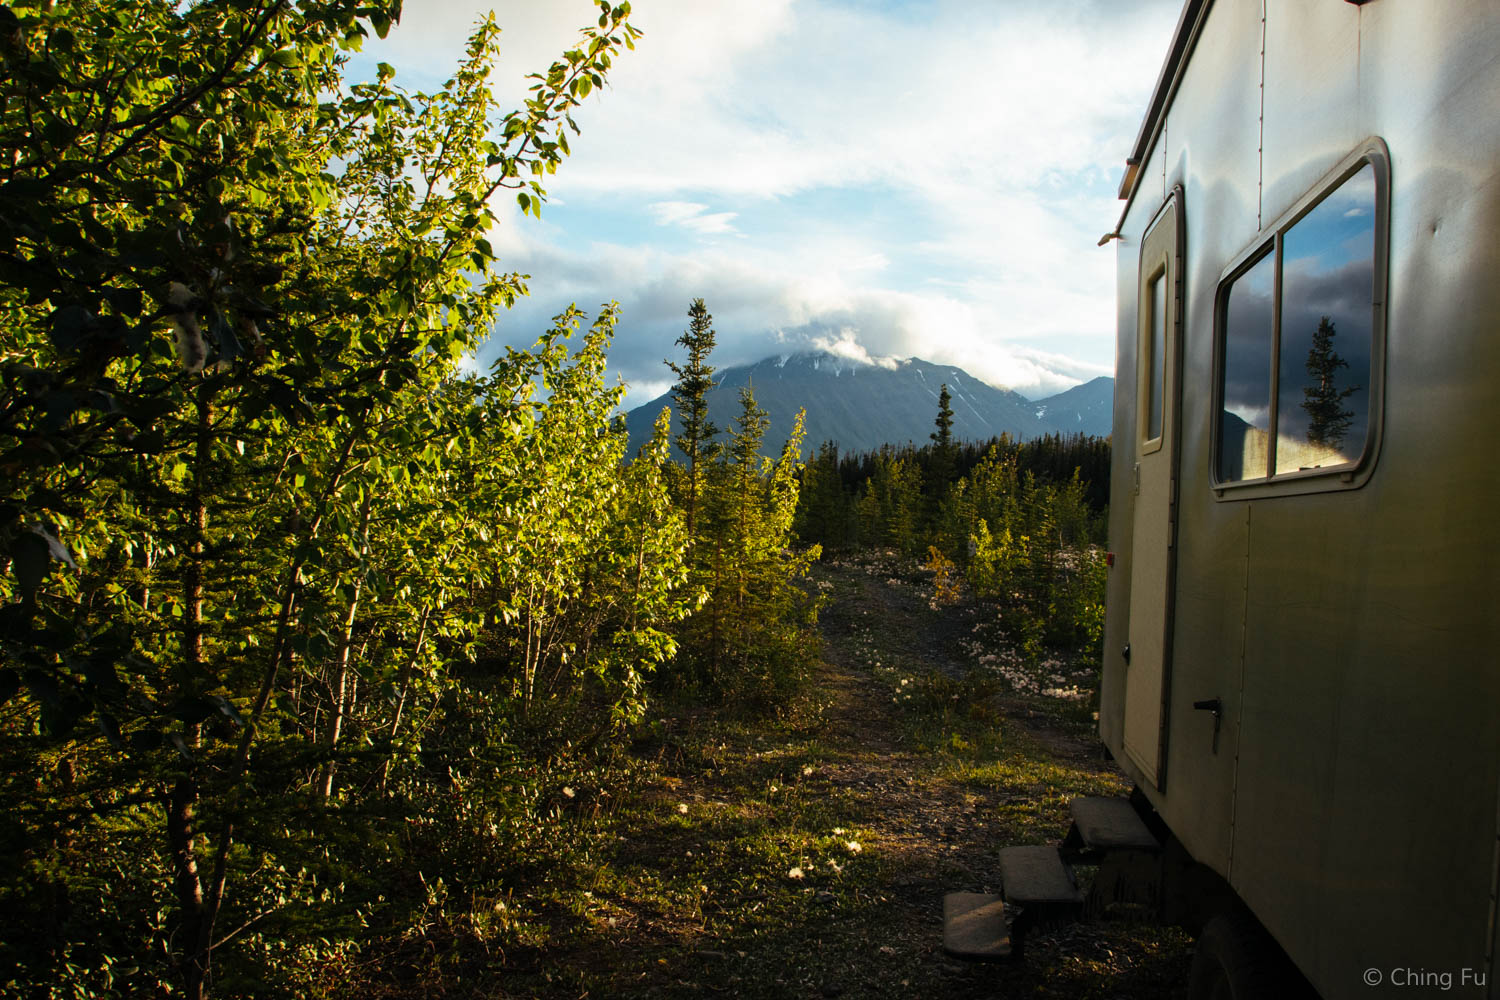 Boondocking next to Quill Creek.